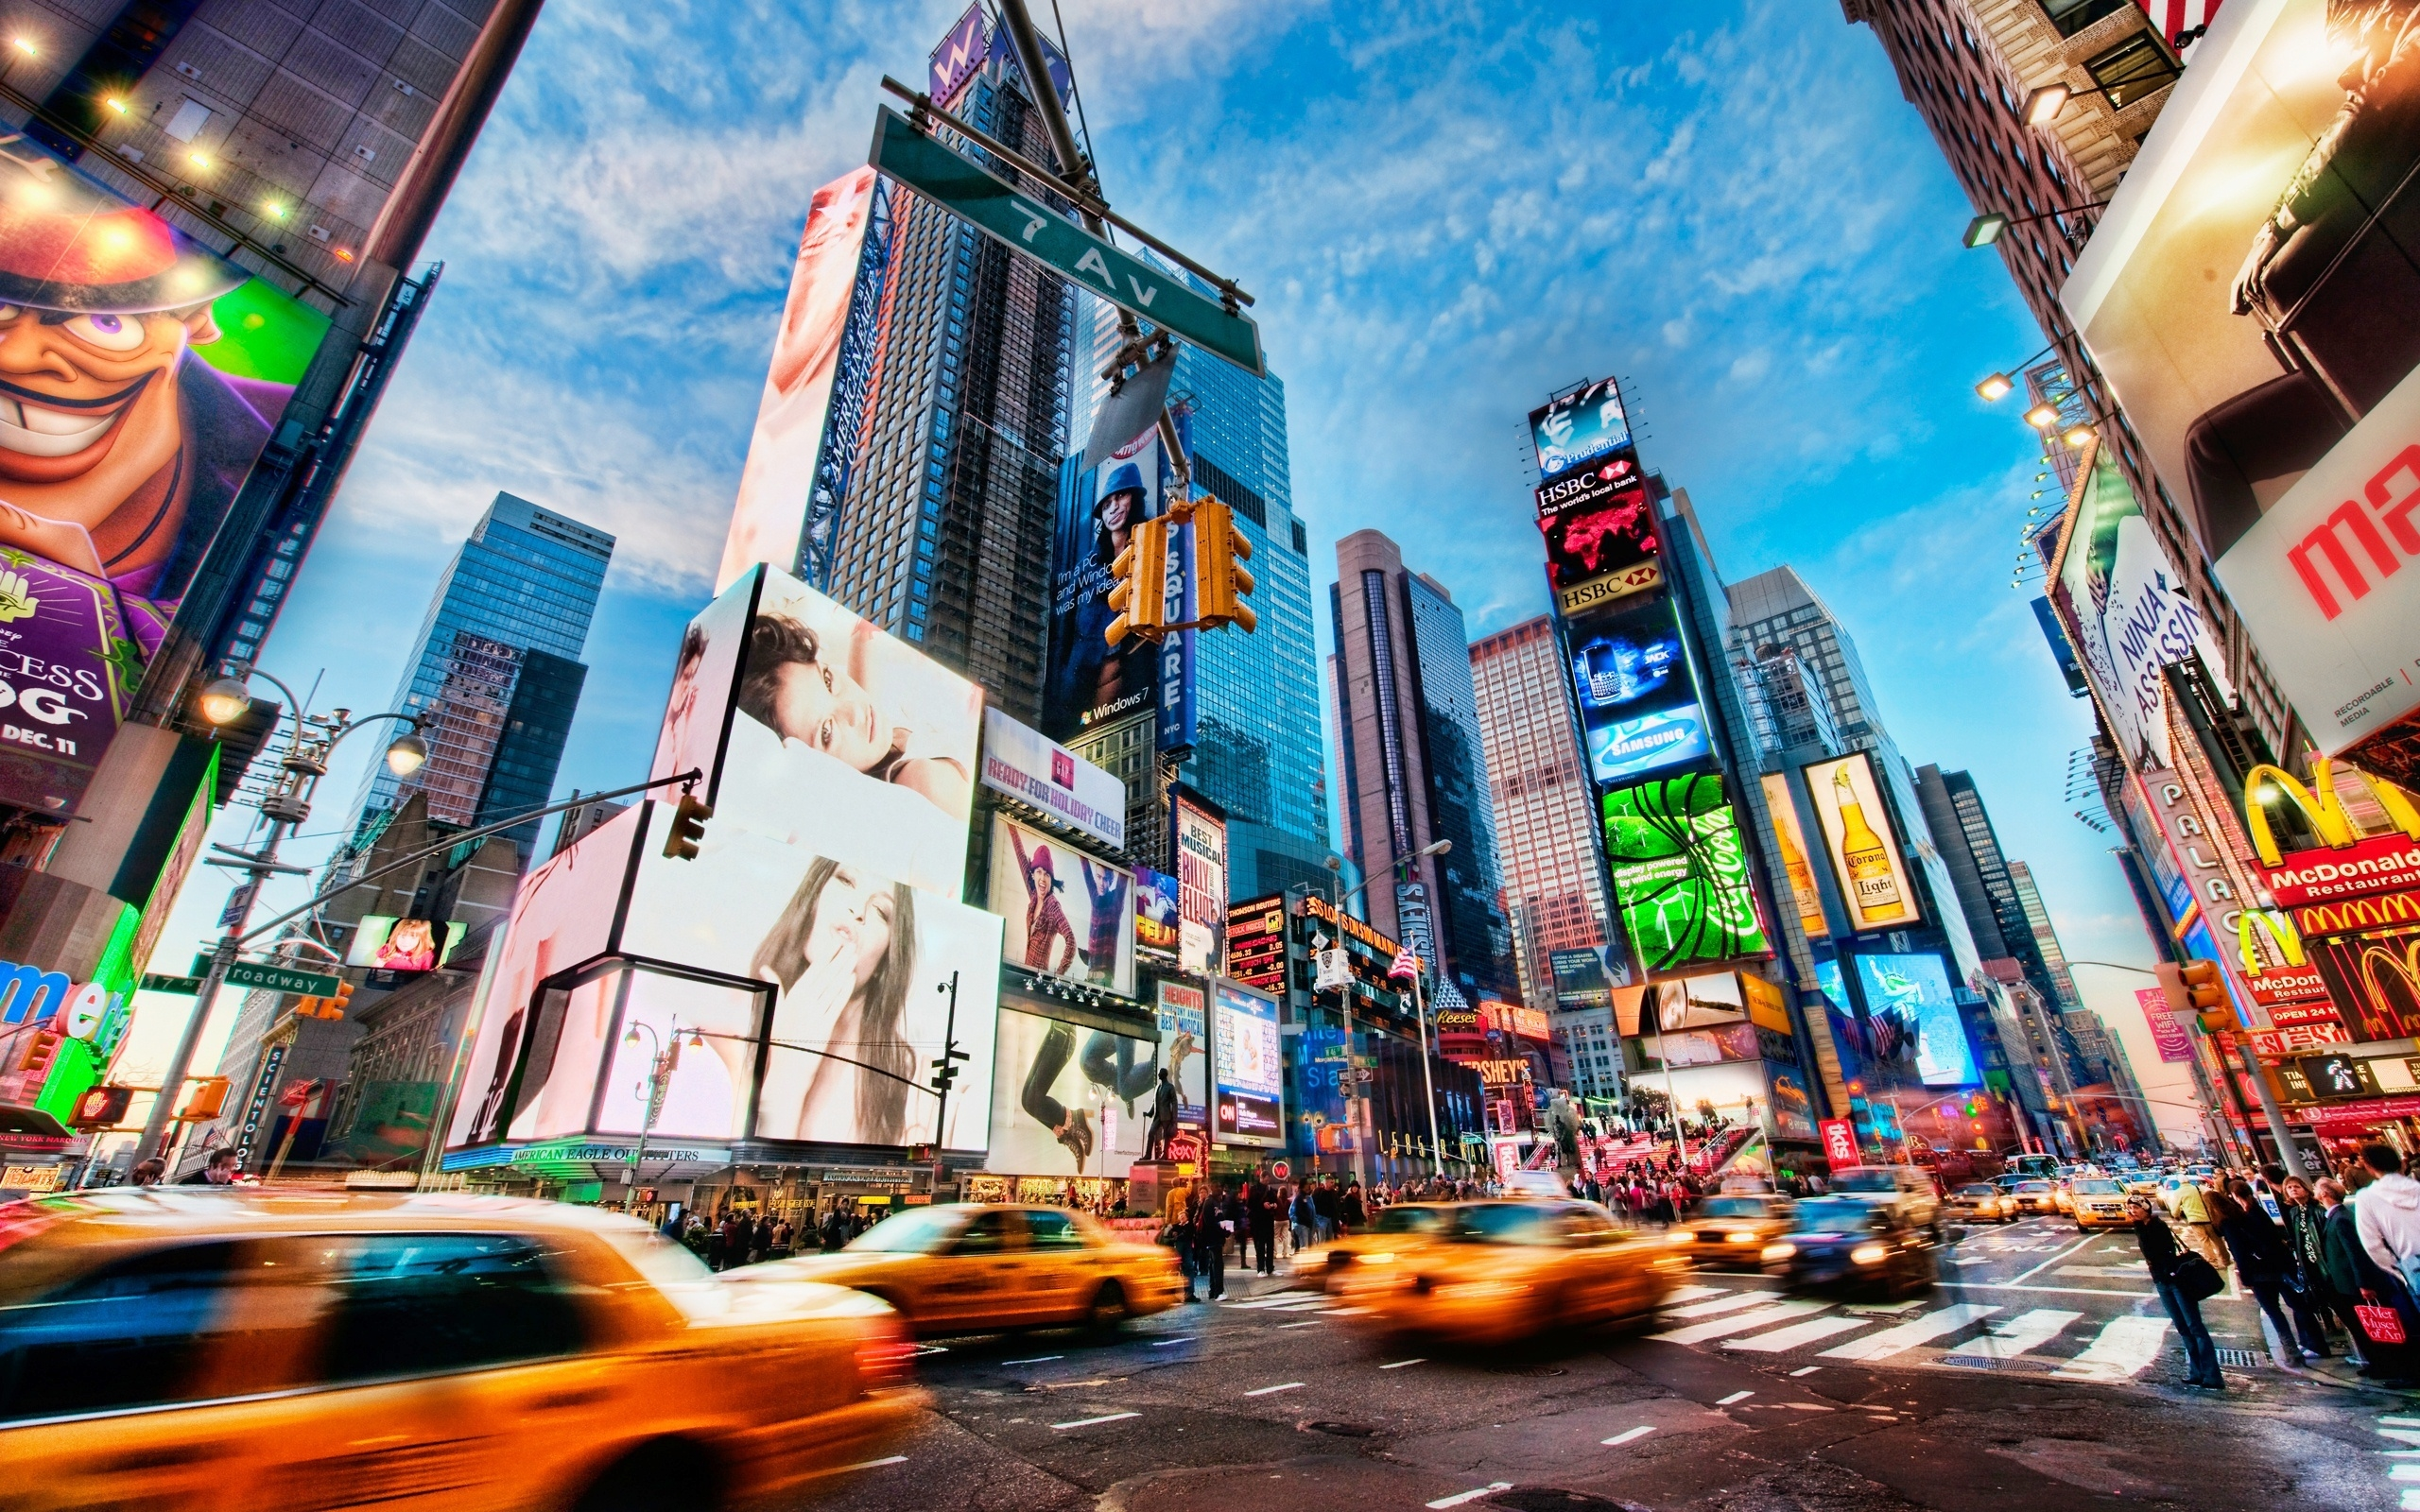 times square new york mac wallpaper download | free mac wallpapers